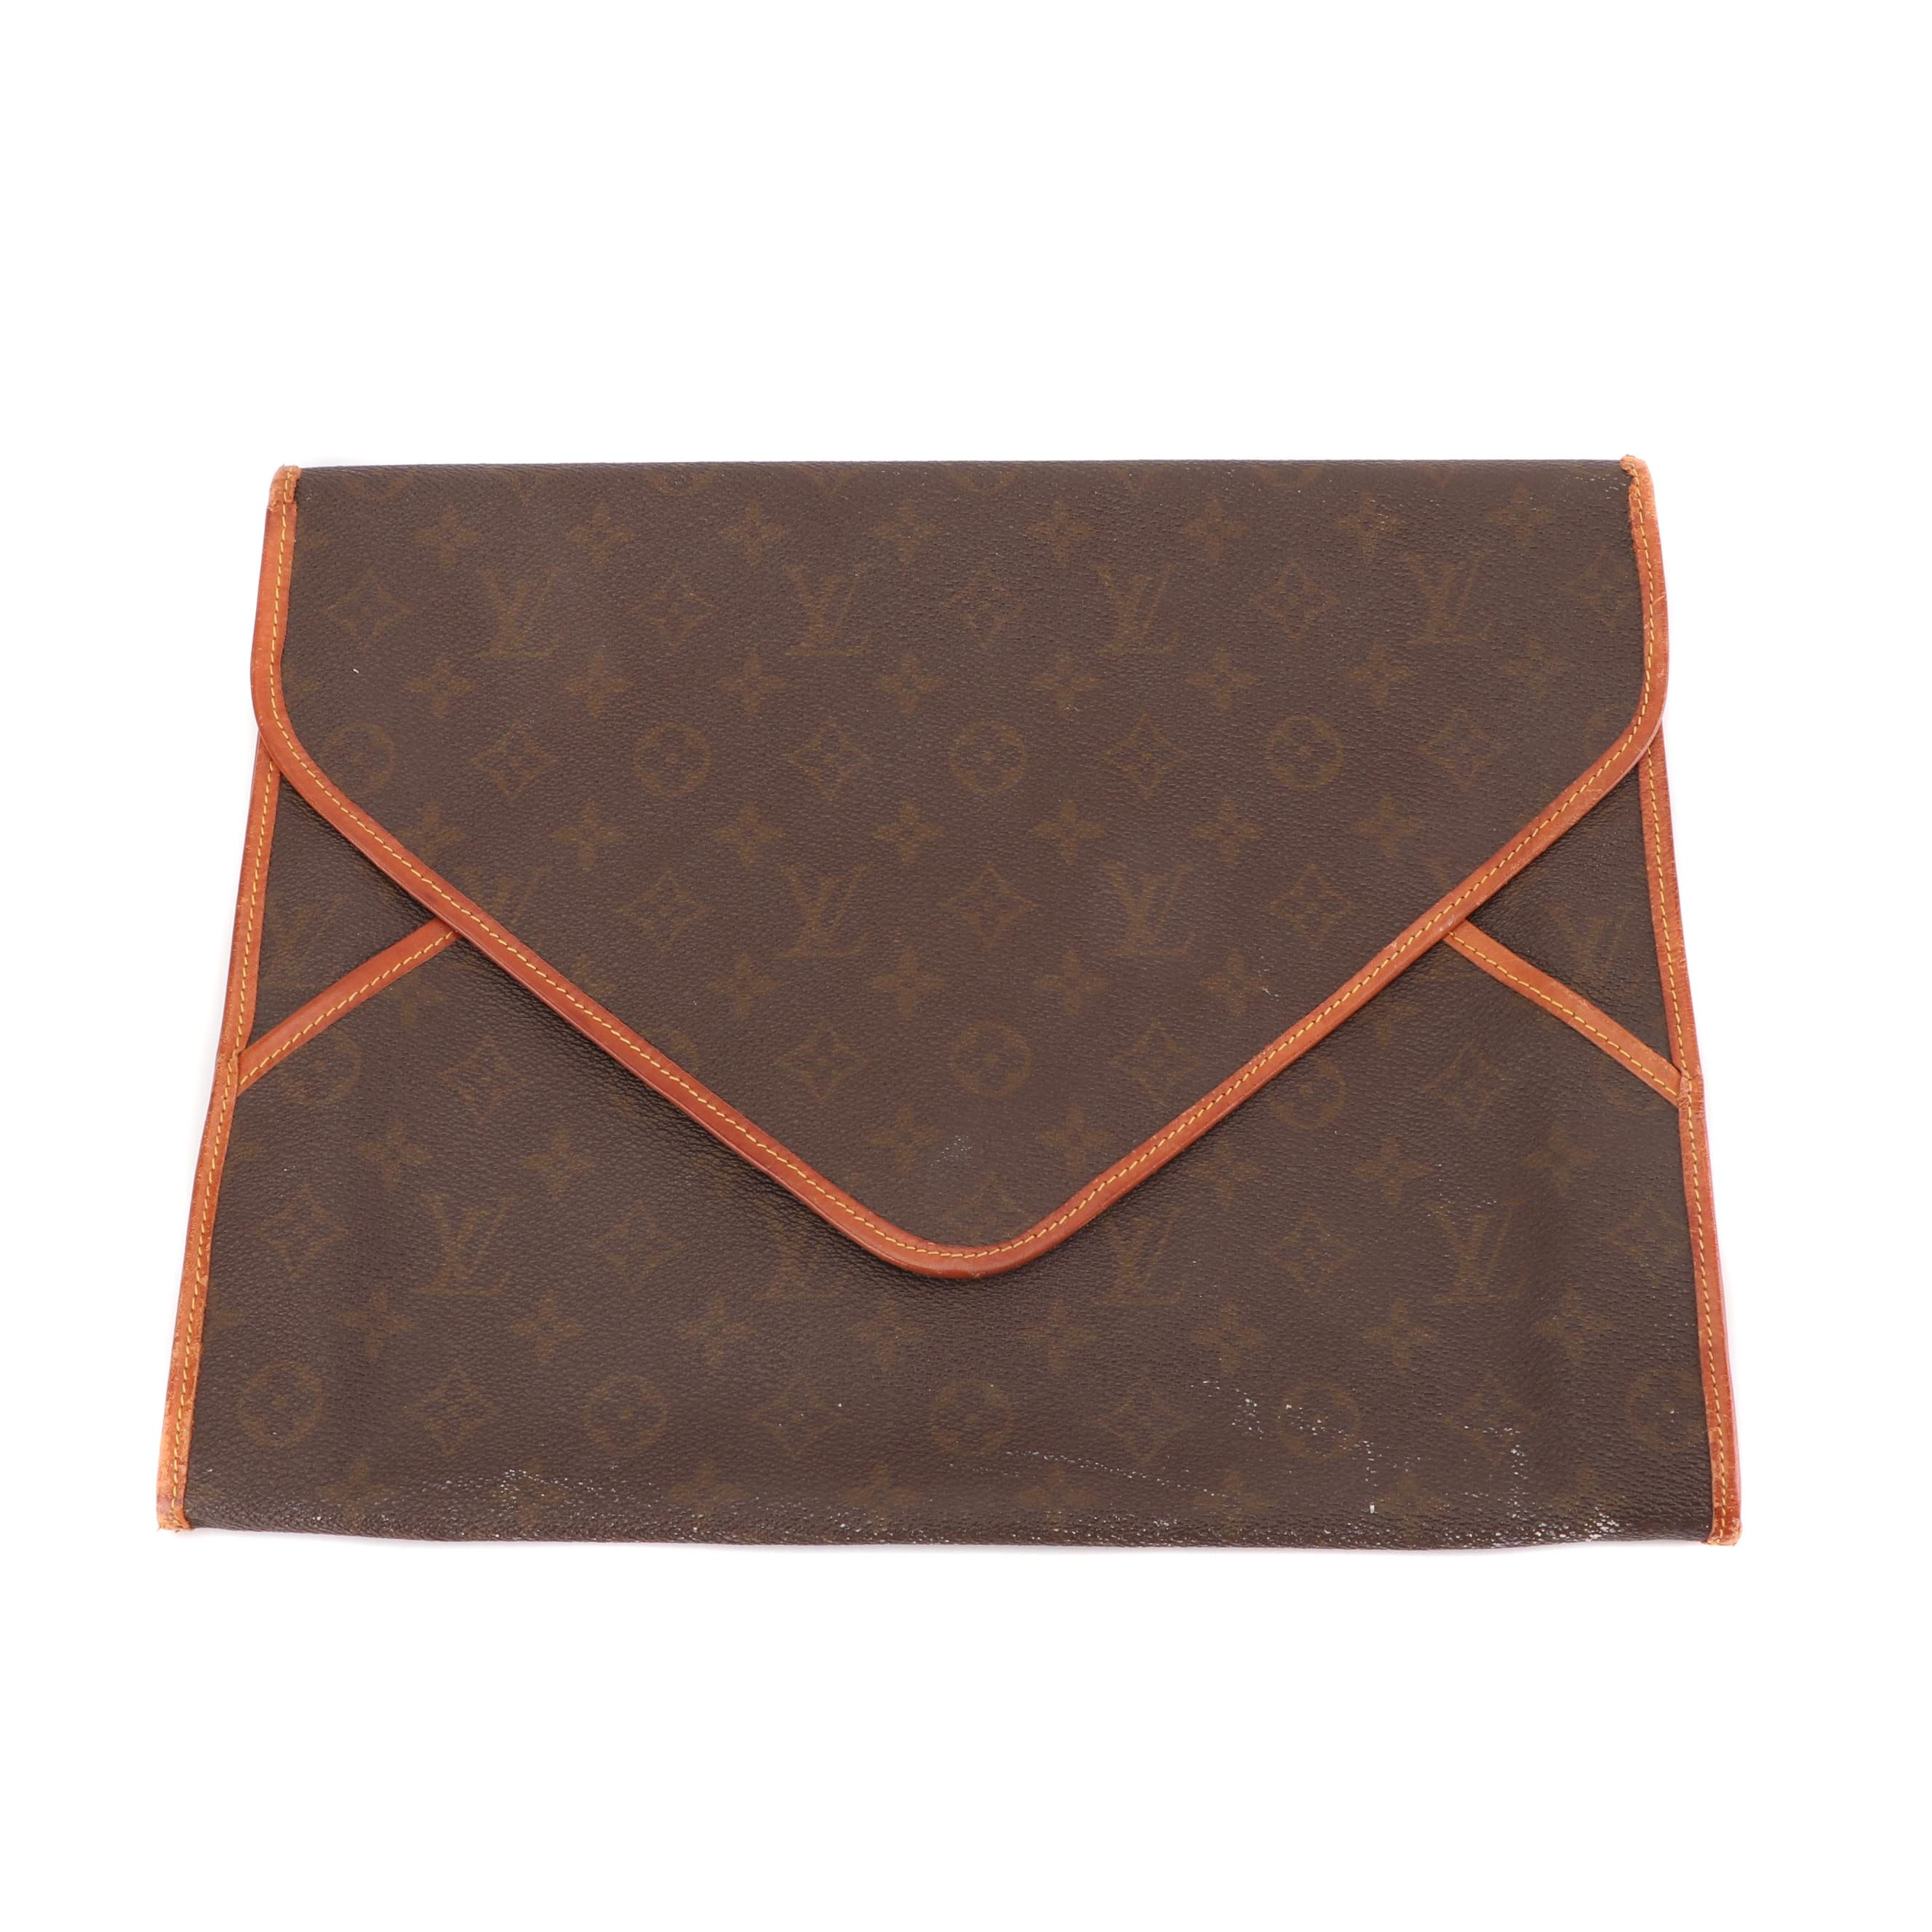 Louis Vuitton Monogram Canvas Envelope Clutch